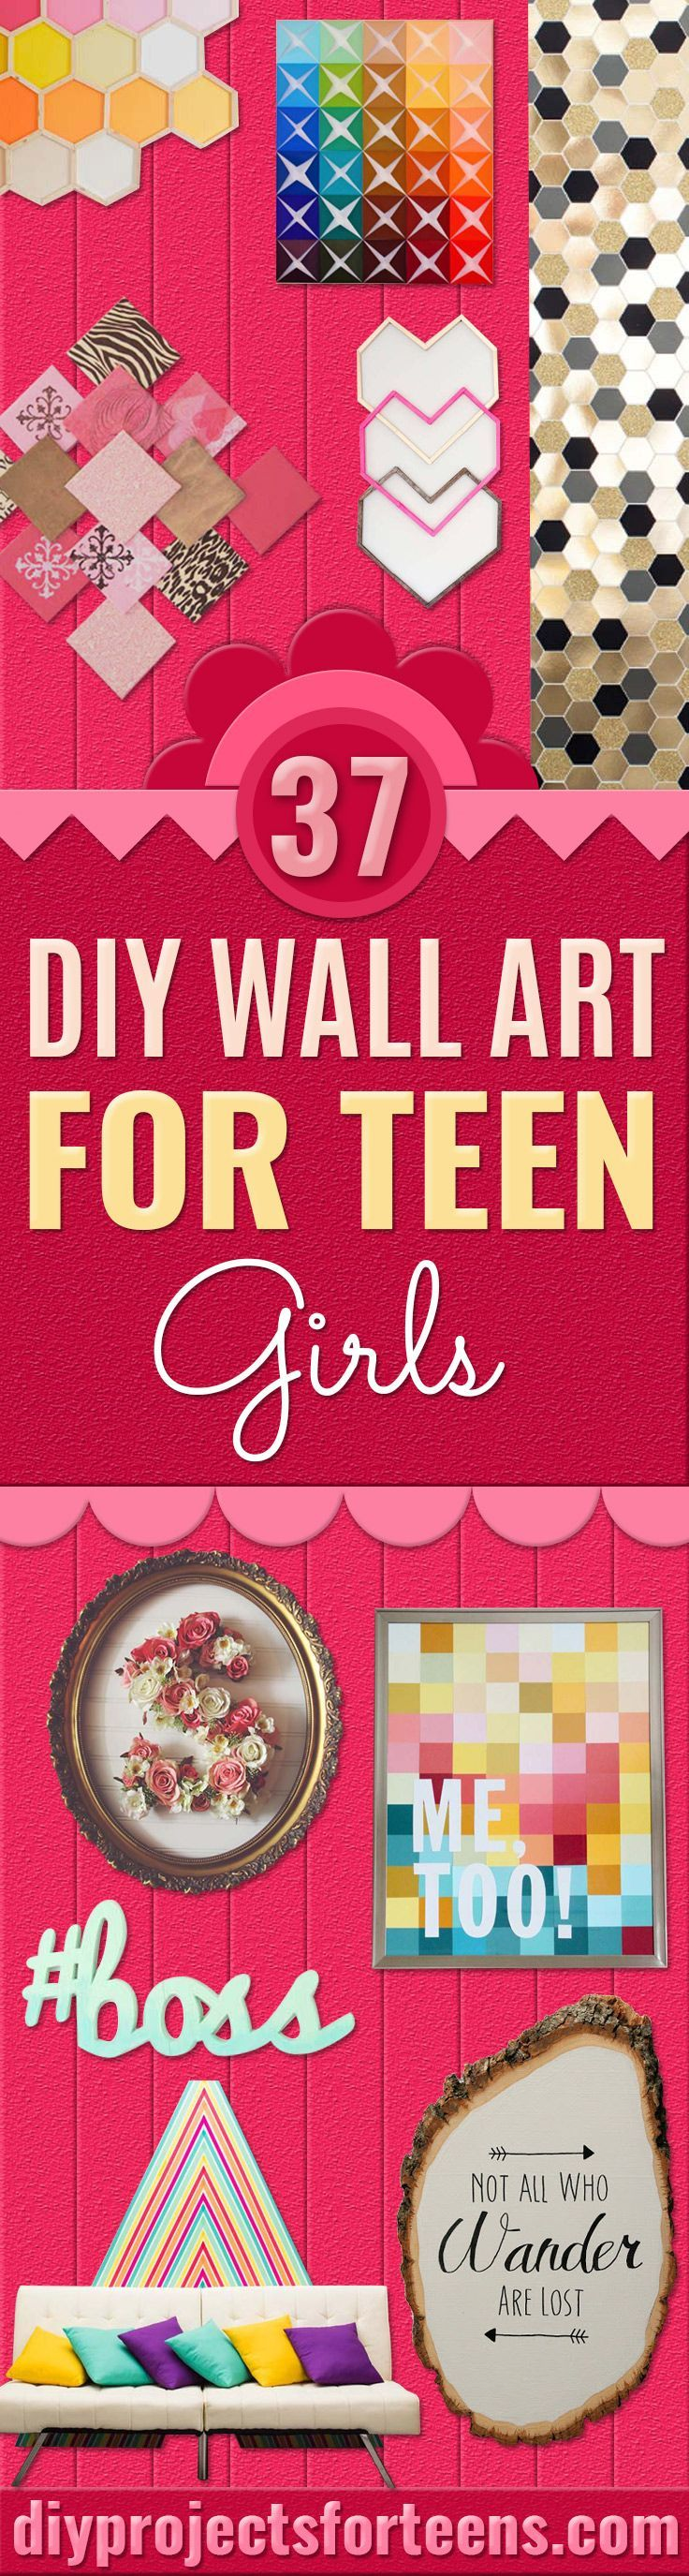 37 Awesome DIY Wall Art Ideas for